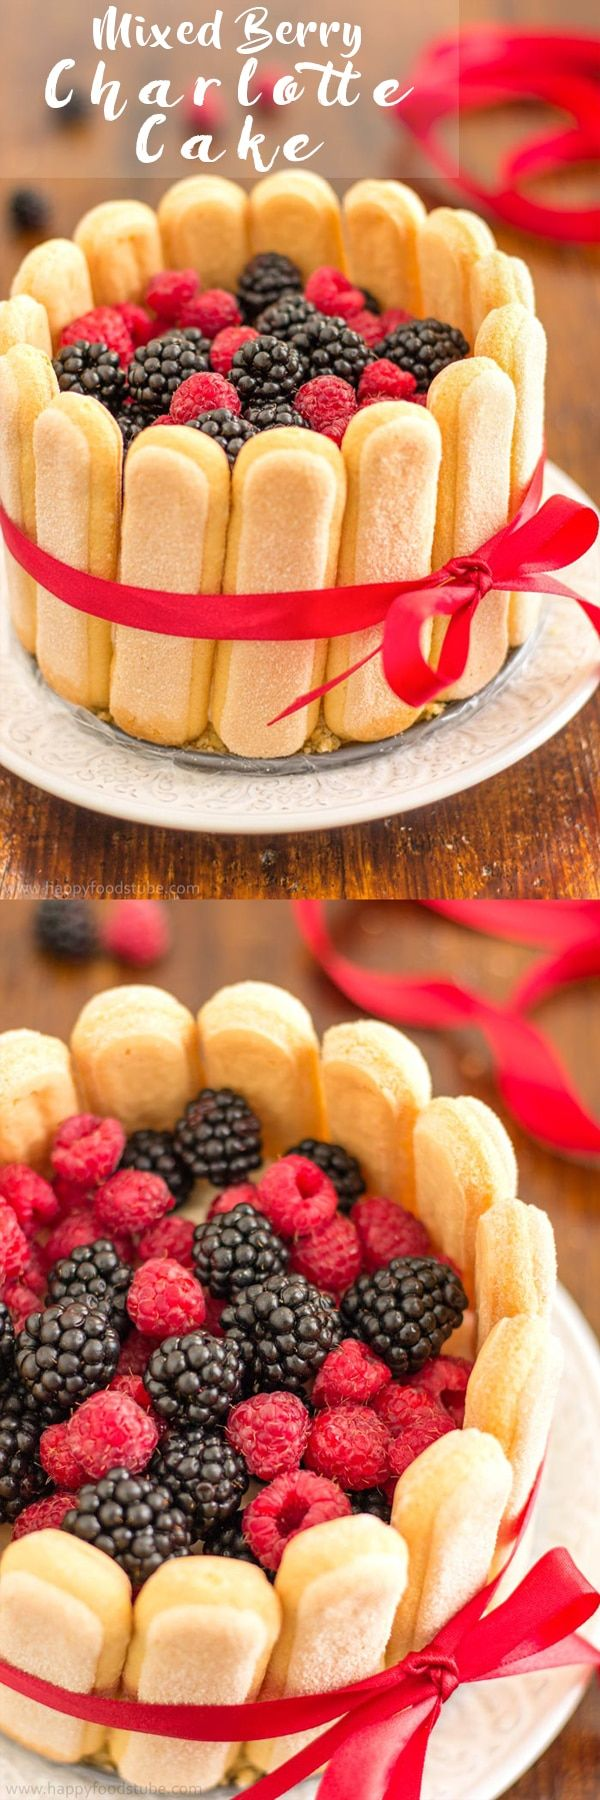 Mixed Berry Charlotte Cake will definitely satisfy your taste buds! Base made of ladyfingers is followed by creamy mascarpone filling and topped with fresh mixed berries! | happyfoodstube.com